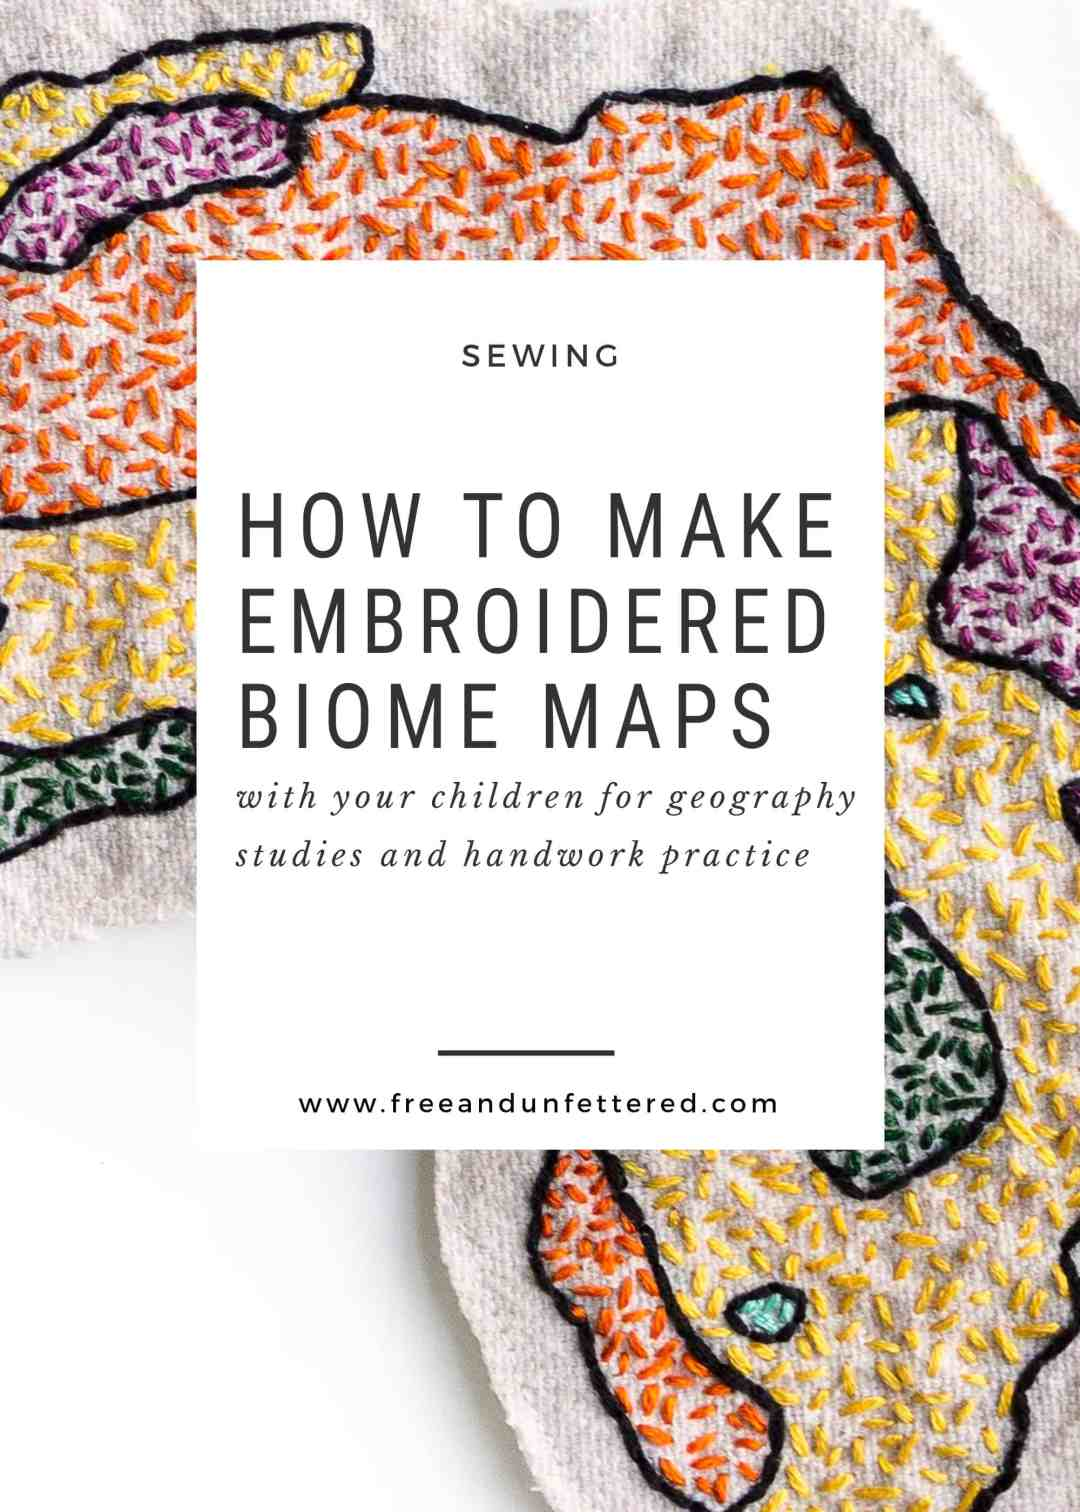 Sewing with Kids: How to Make Embroidered Biome Maps. It's a great handwork project for kids to undertake alongside geography studies. #montessoriathome #practicallife #handwork #charlottemason #homeeducation